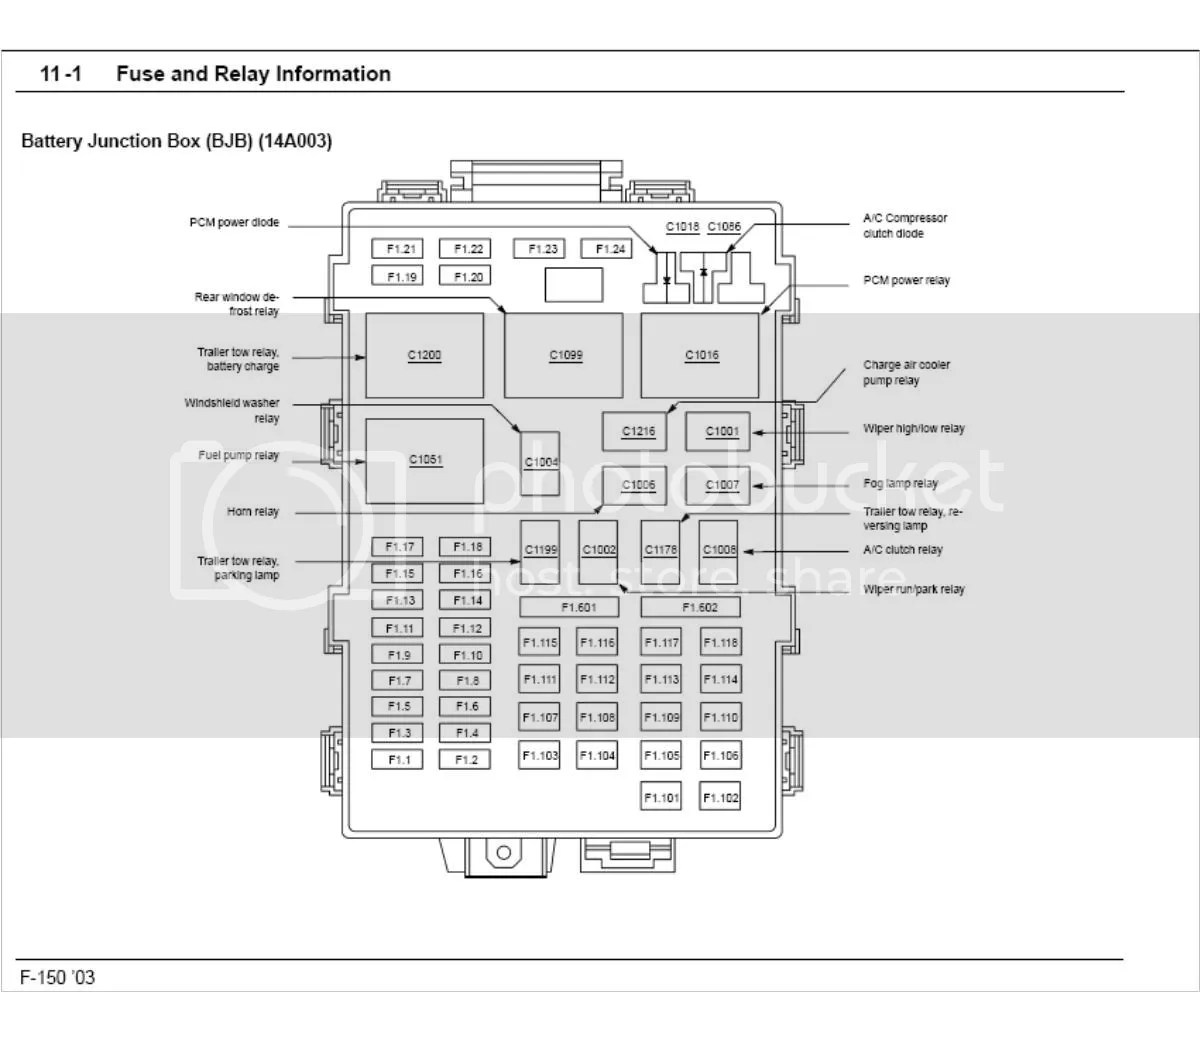 hight resolution of ford f 150 fuse panel diagram 2003 wiring diagram todays 2001 f250 fuse box diagram 2001 f150 fuse diagram